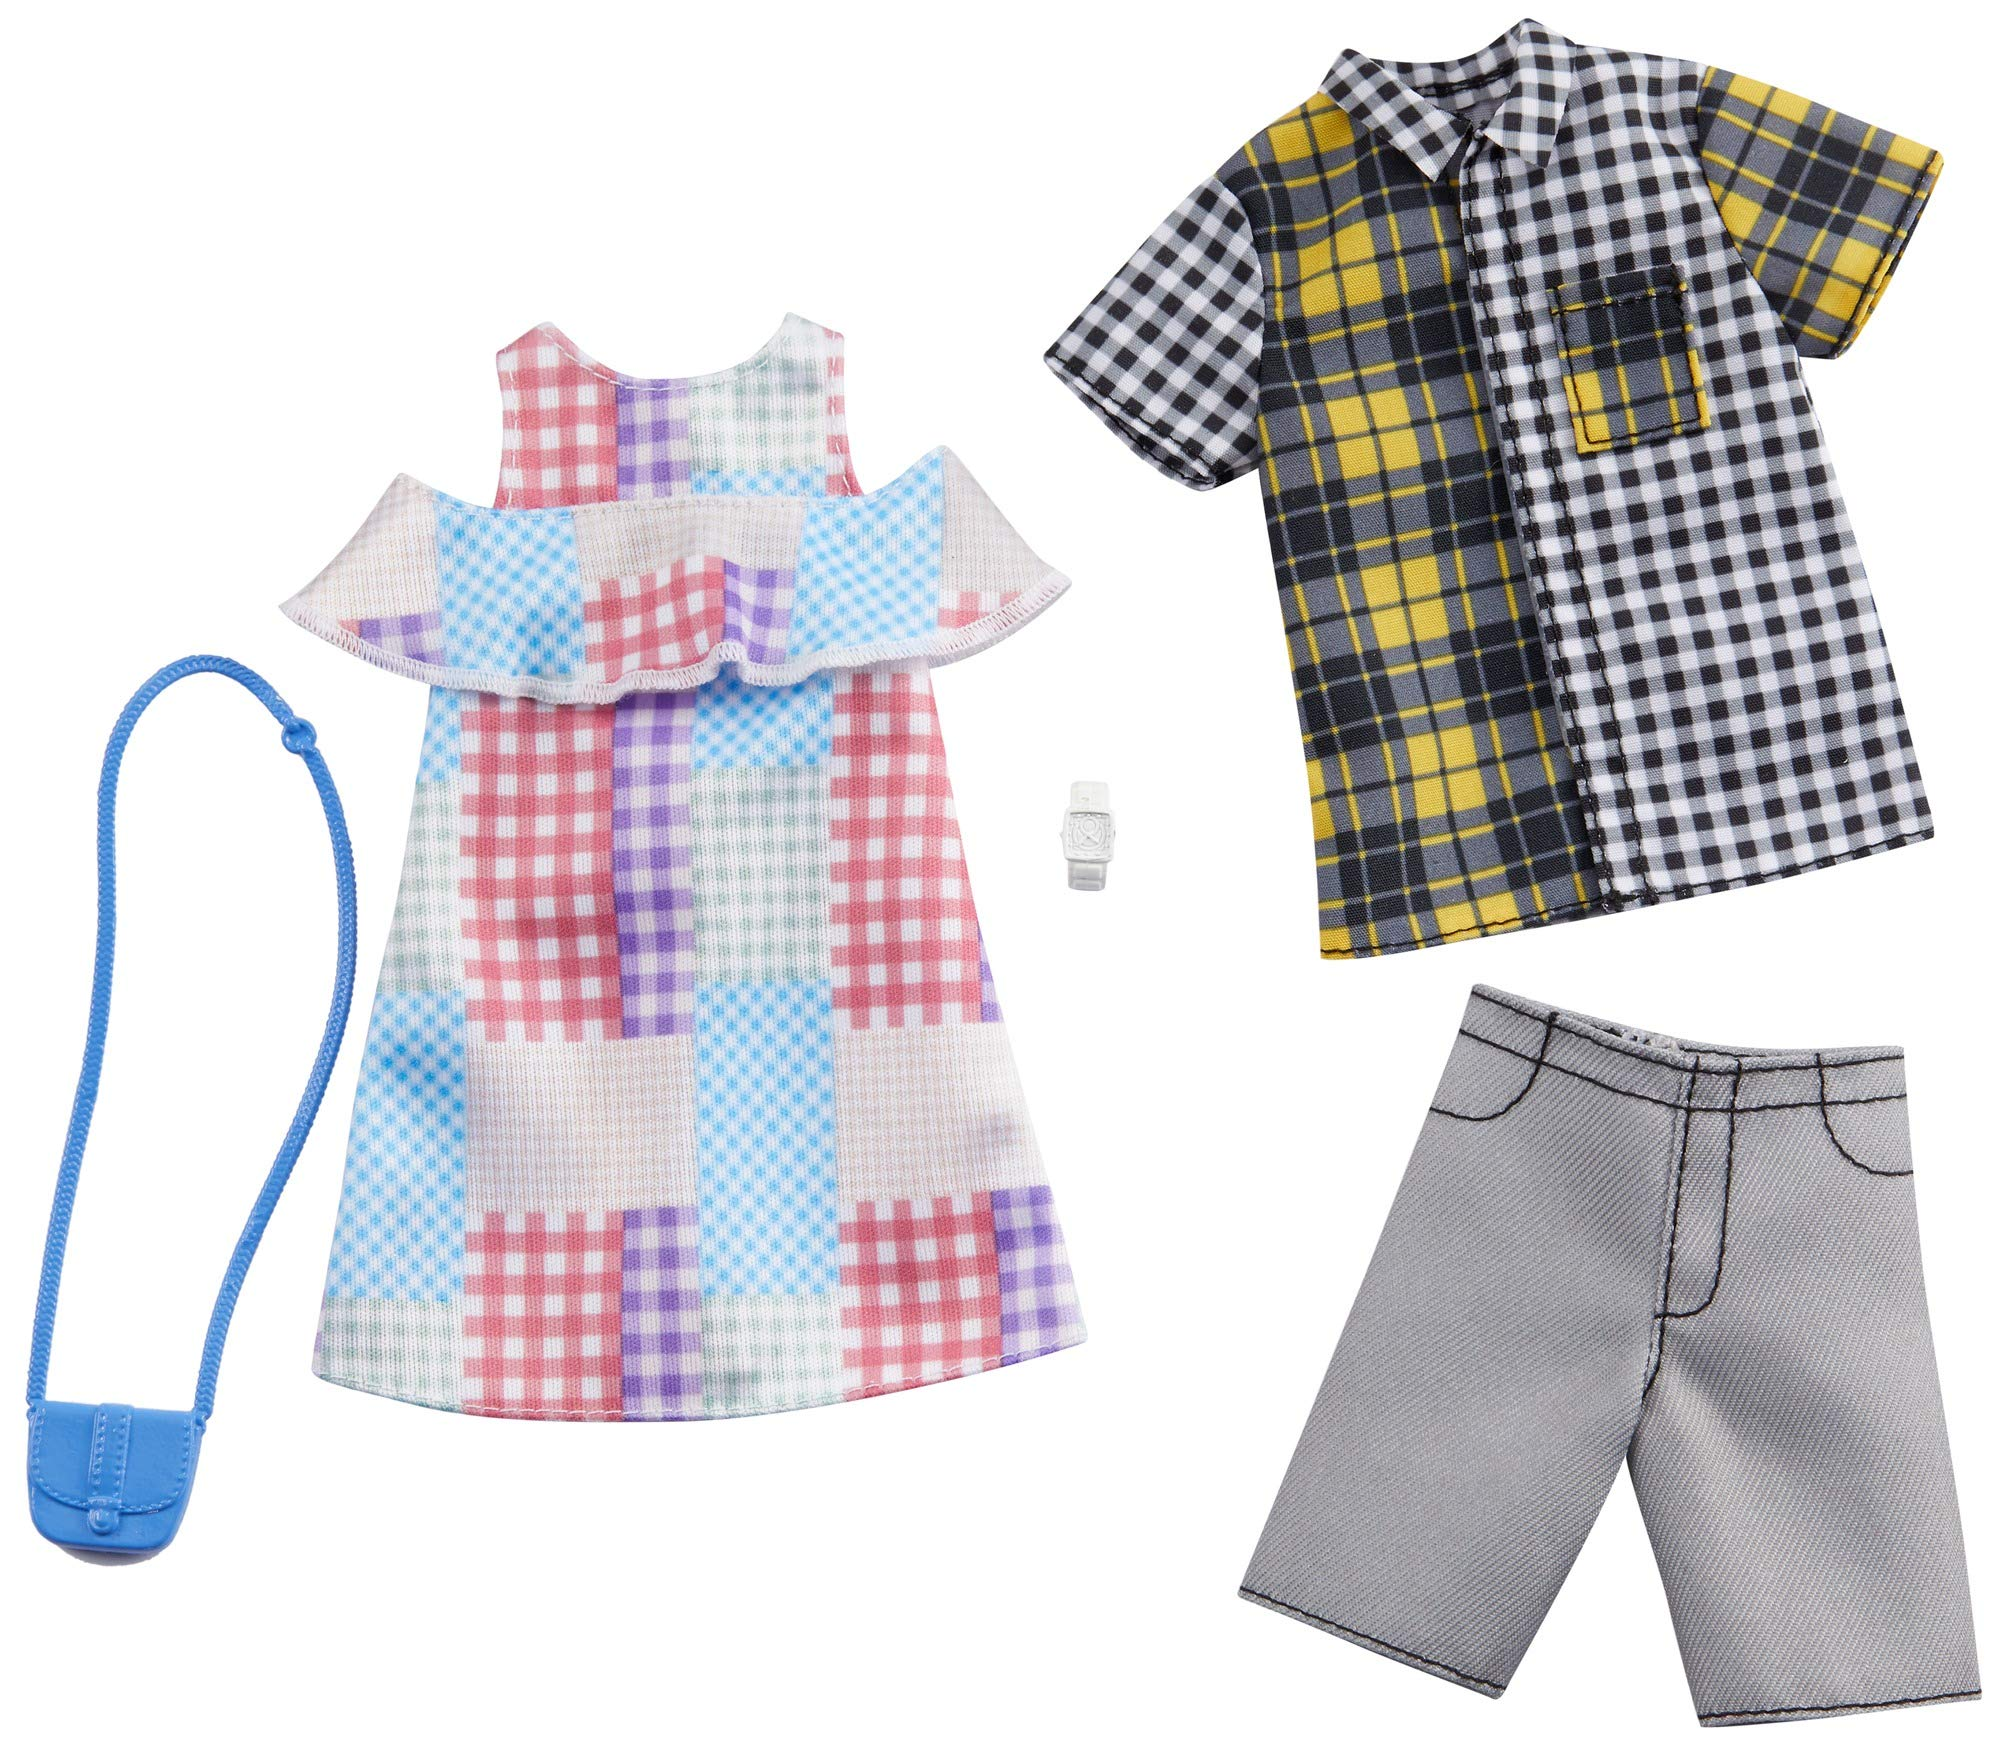 Barbie Fashion Pack with 1 Outfit of Gingham Patterned Dress & 1 Accessory Doll & Plaid Shirt, Shorts & Accessory for Ken Doll, Gift for 3 to 8 Year Olds